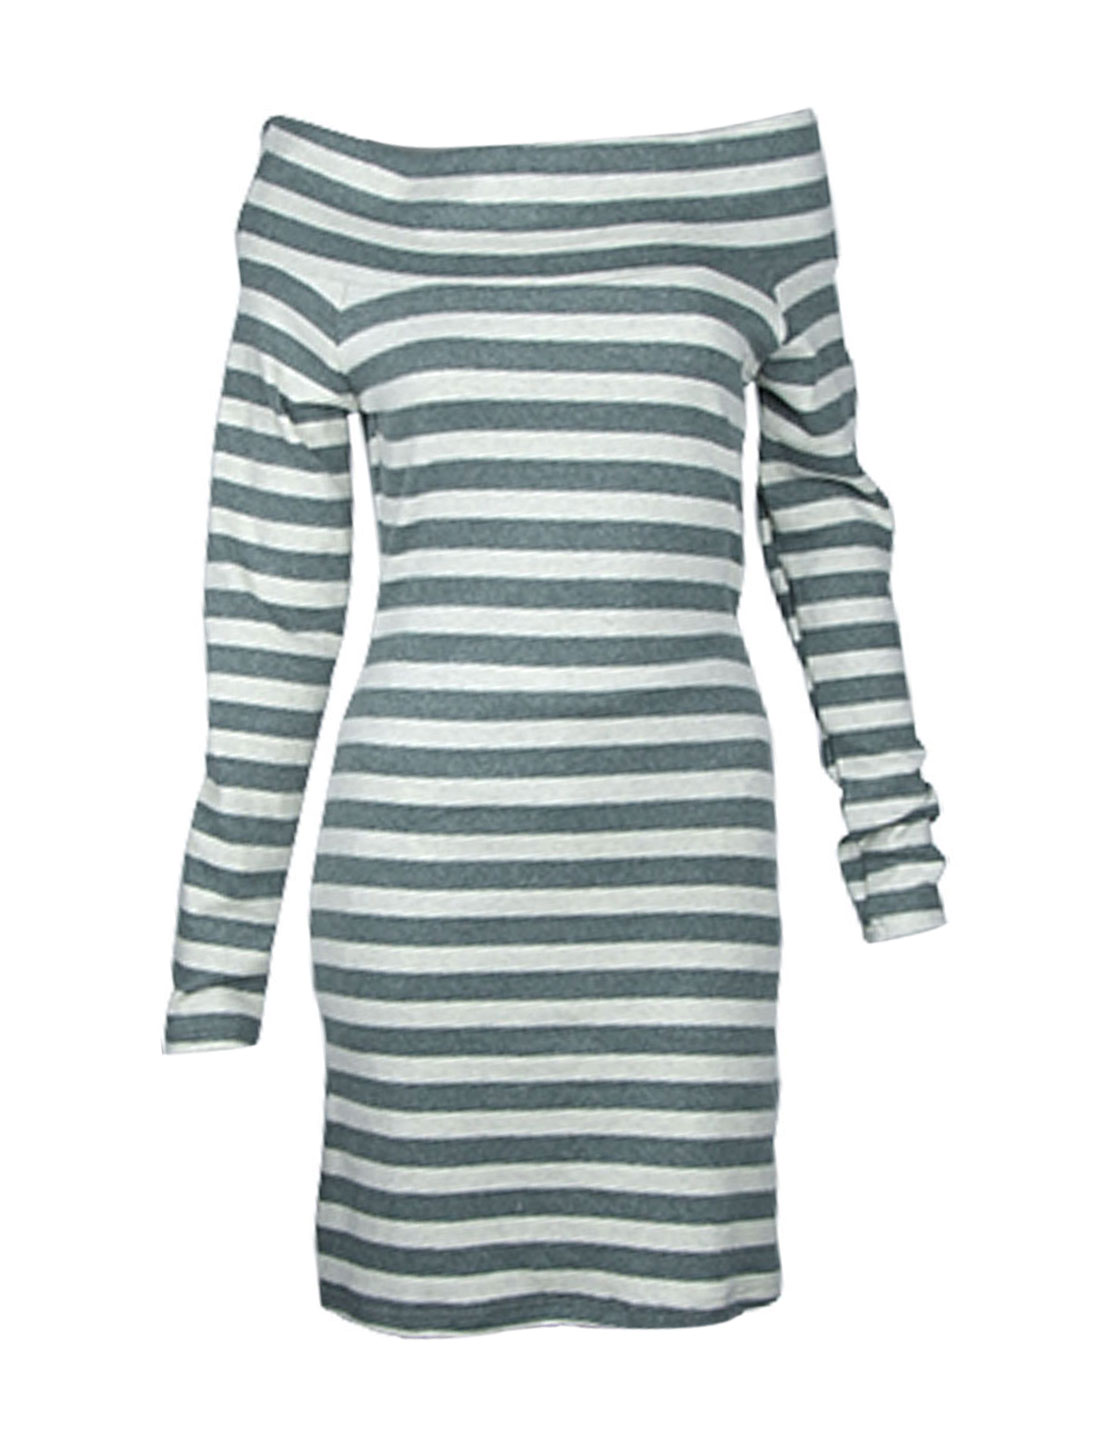 Size XS Olive Green Offwhite Stripe Style Boat Neck Shirt for Ladies